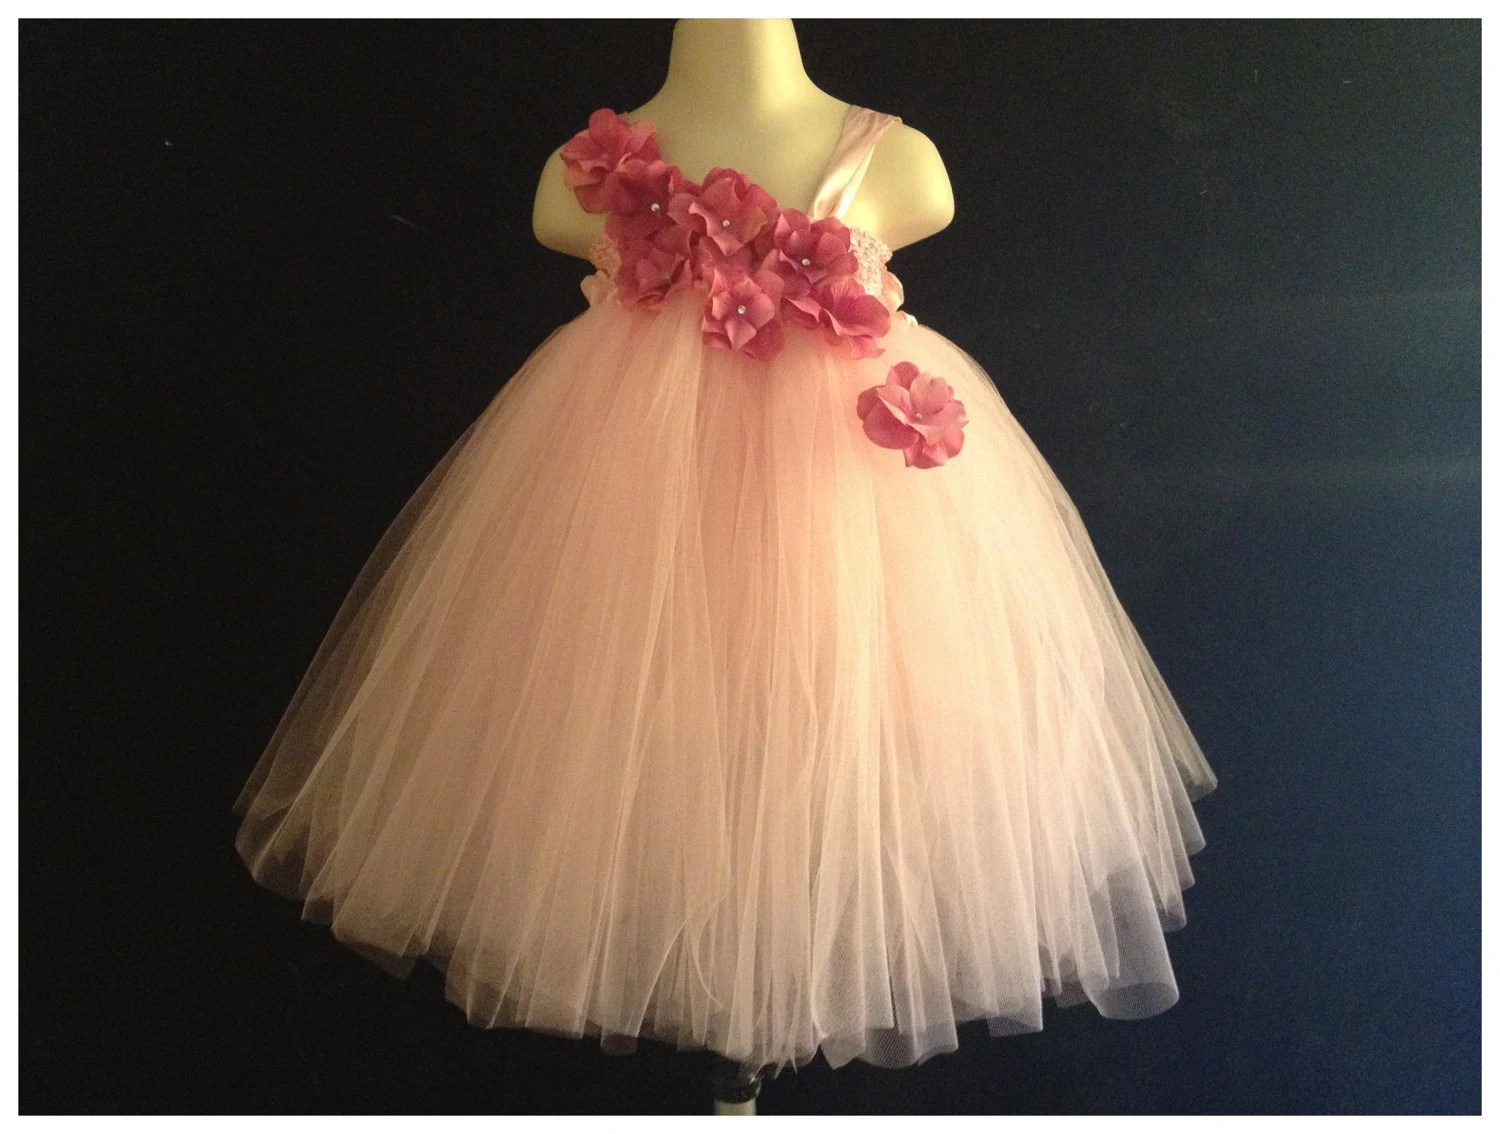 Pink hydrangea tutu dress infant 6M 12M 18M and Toddler 2T 3T 4T Tutu Dress Flower girl Pagent Birthday Photos